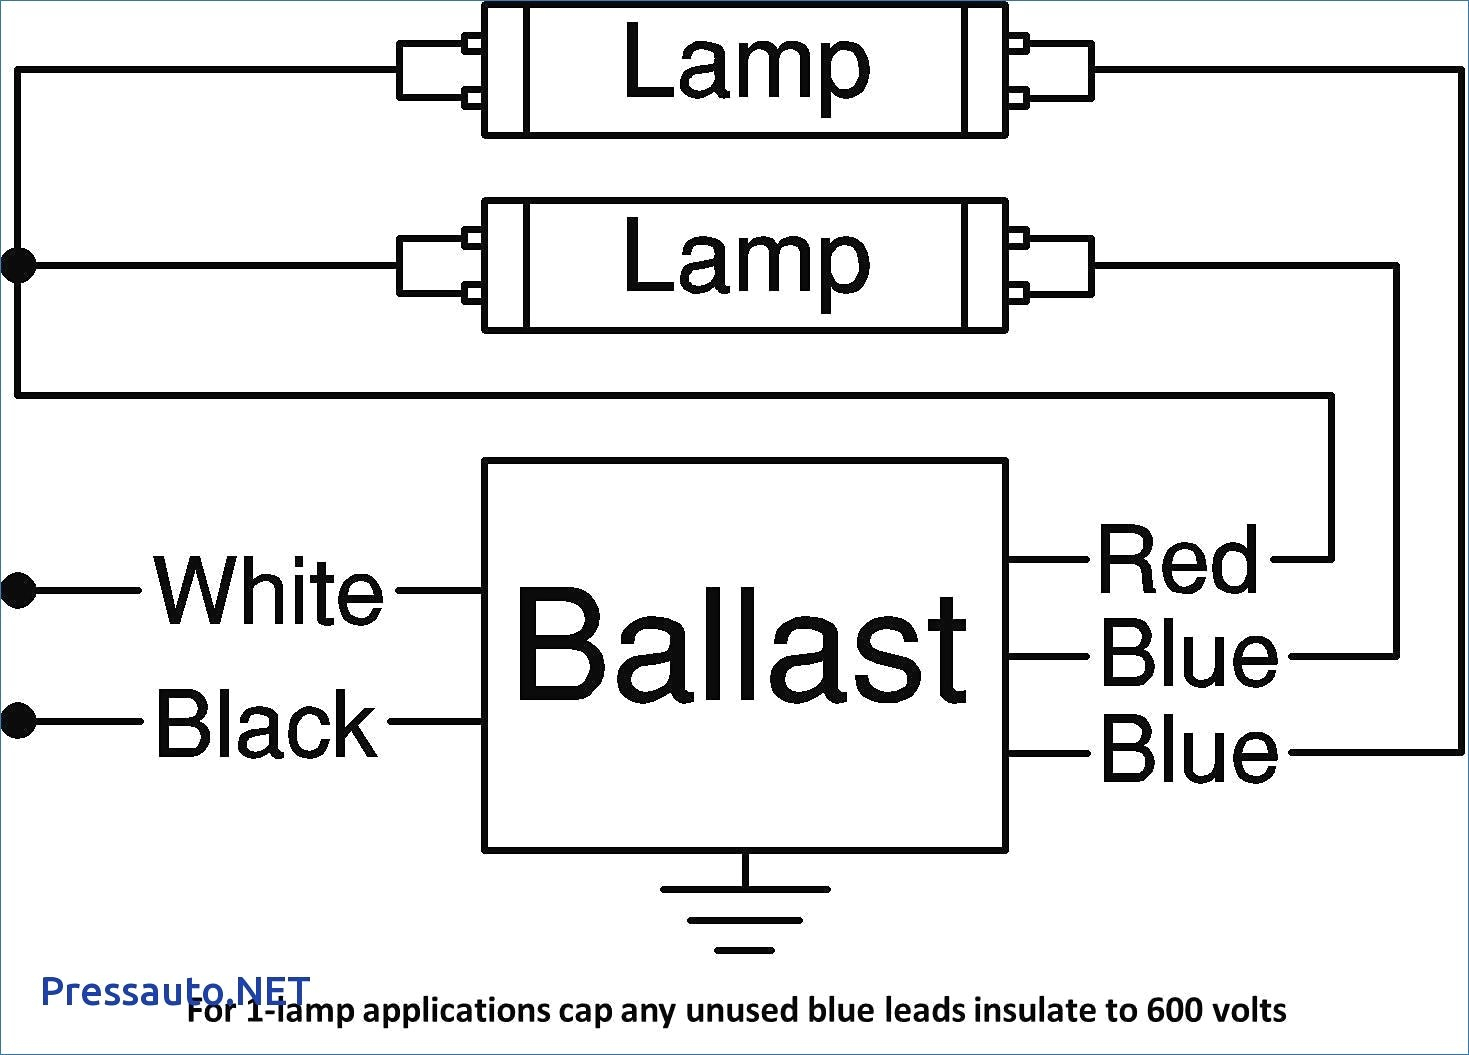 T8 Electronic Ballast Wiring Diagram Free Picture - Wiring ... on